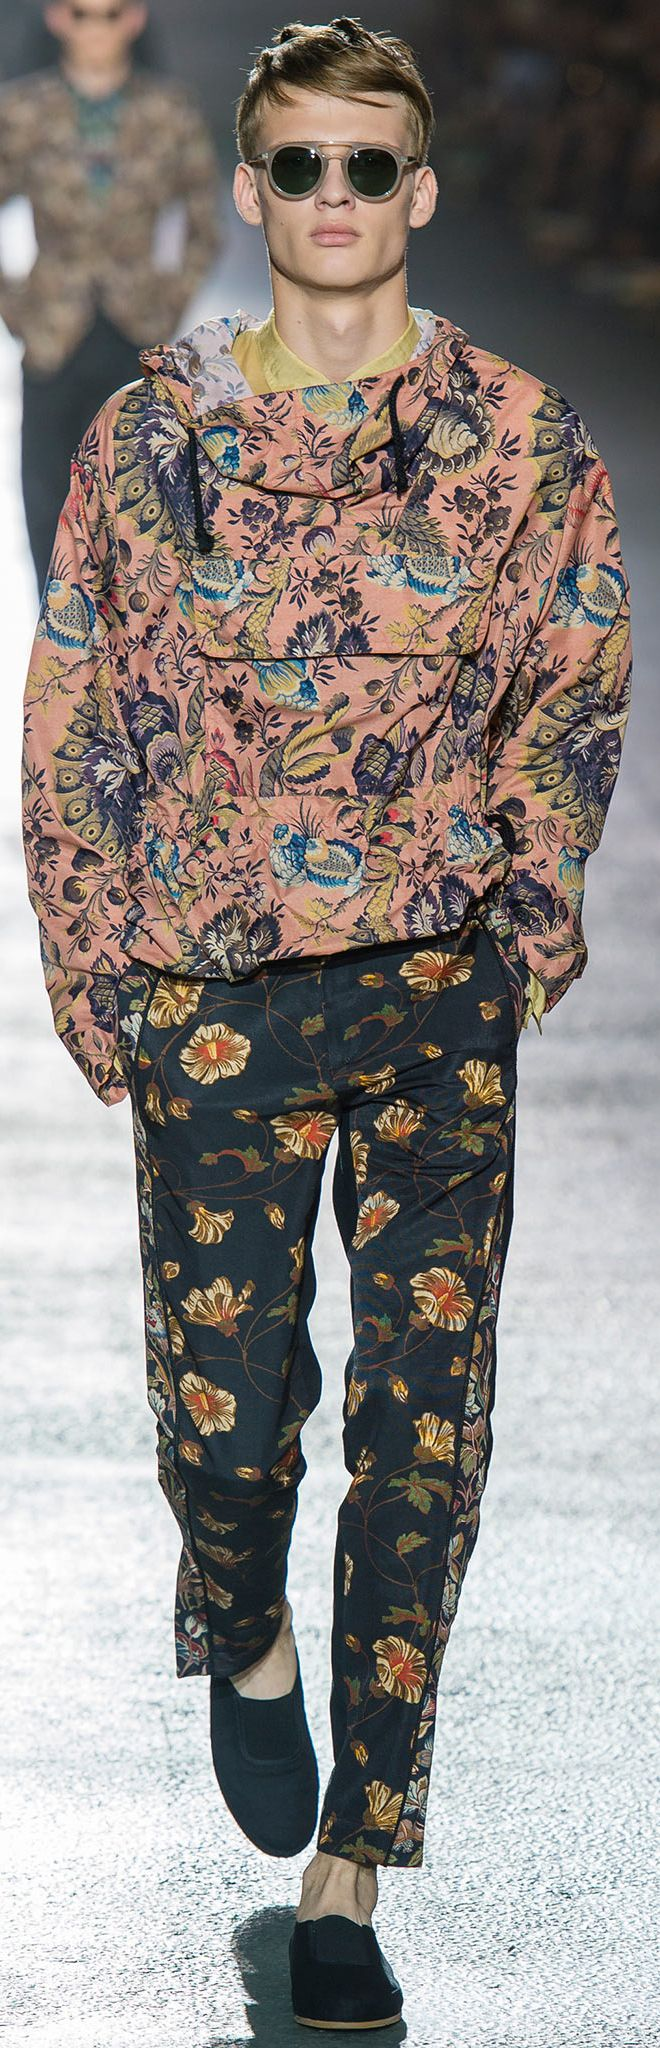 Floral prints for men Dries Van Noten - Spring 2014 Kuddos to the guy who will wear this! Love it!